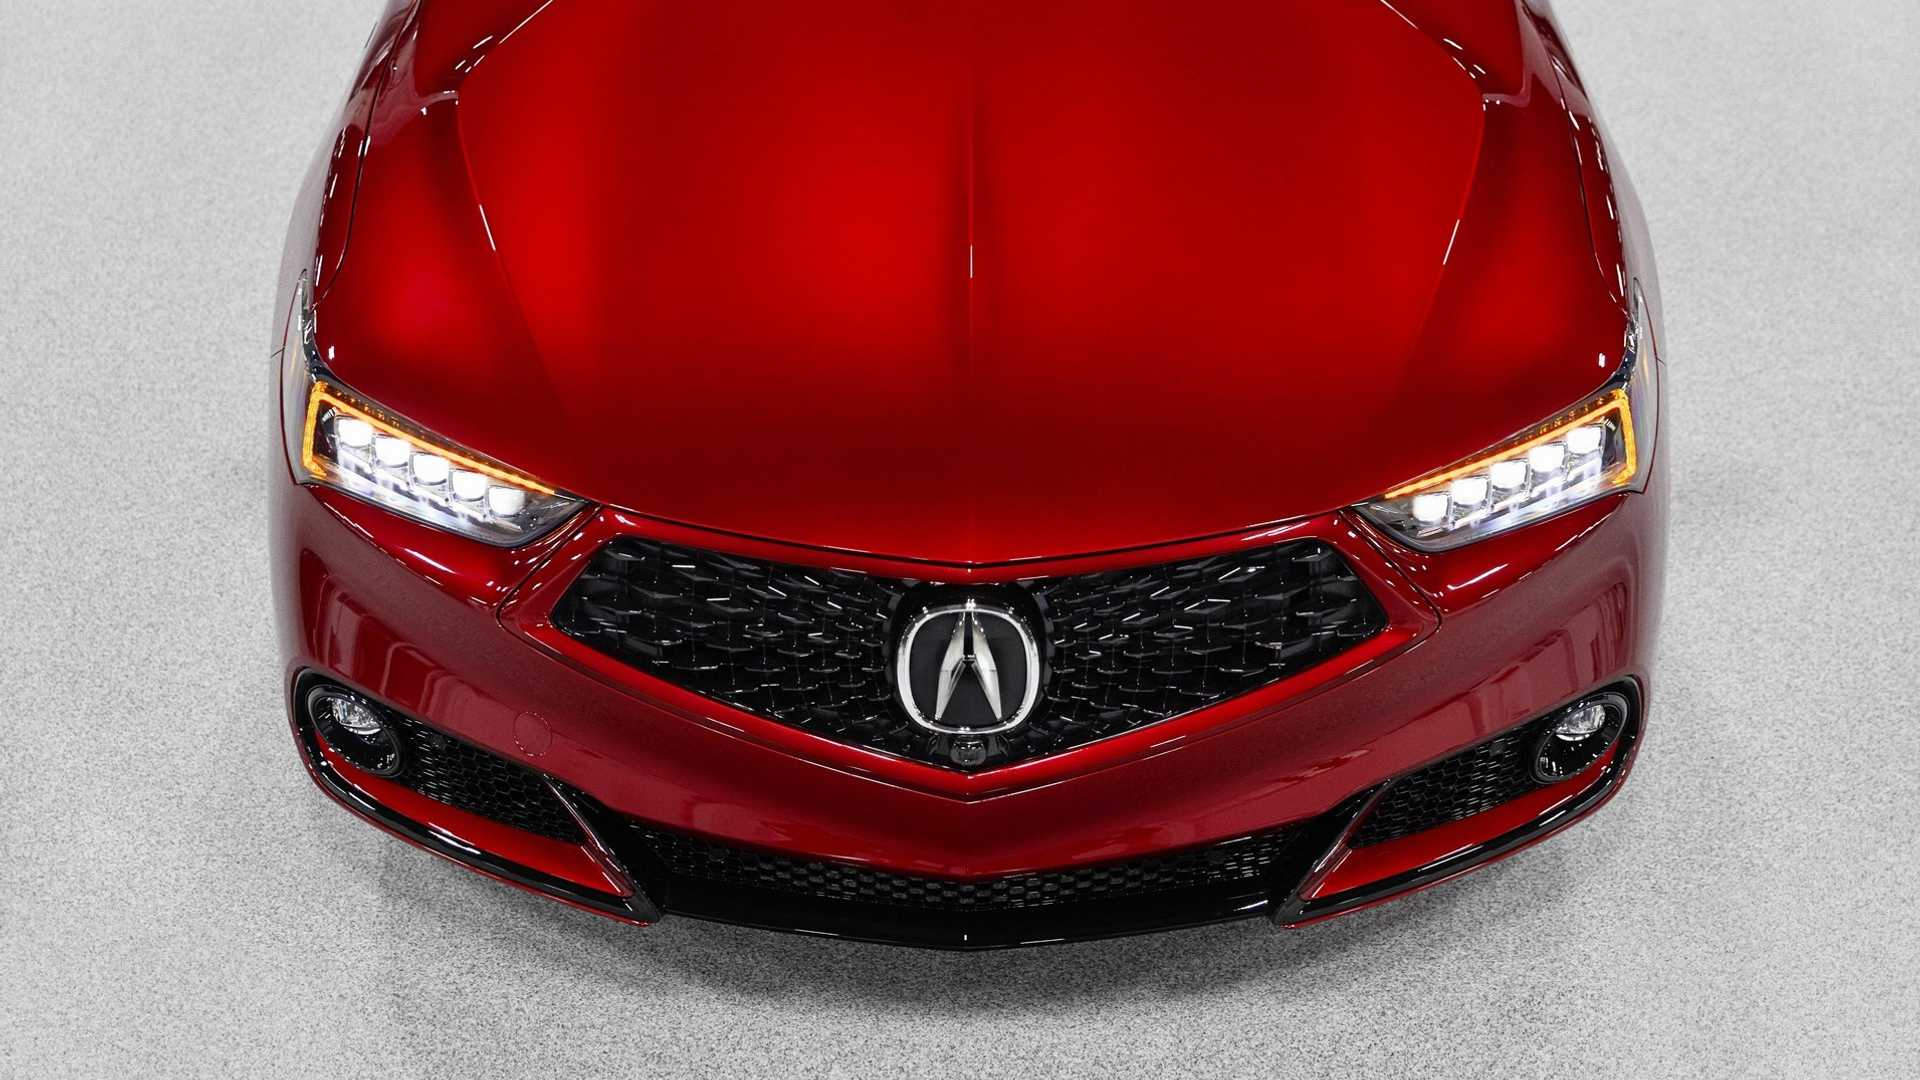 2020-acura-tlx-pmc-edition-4